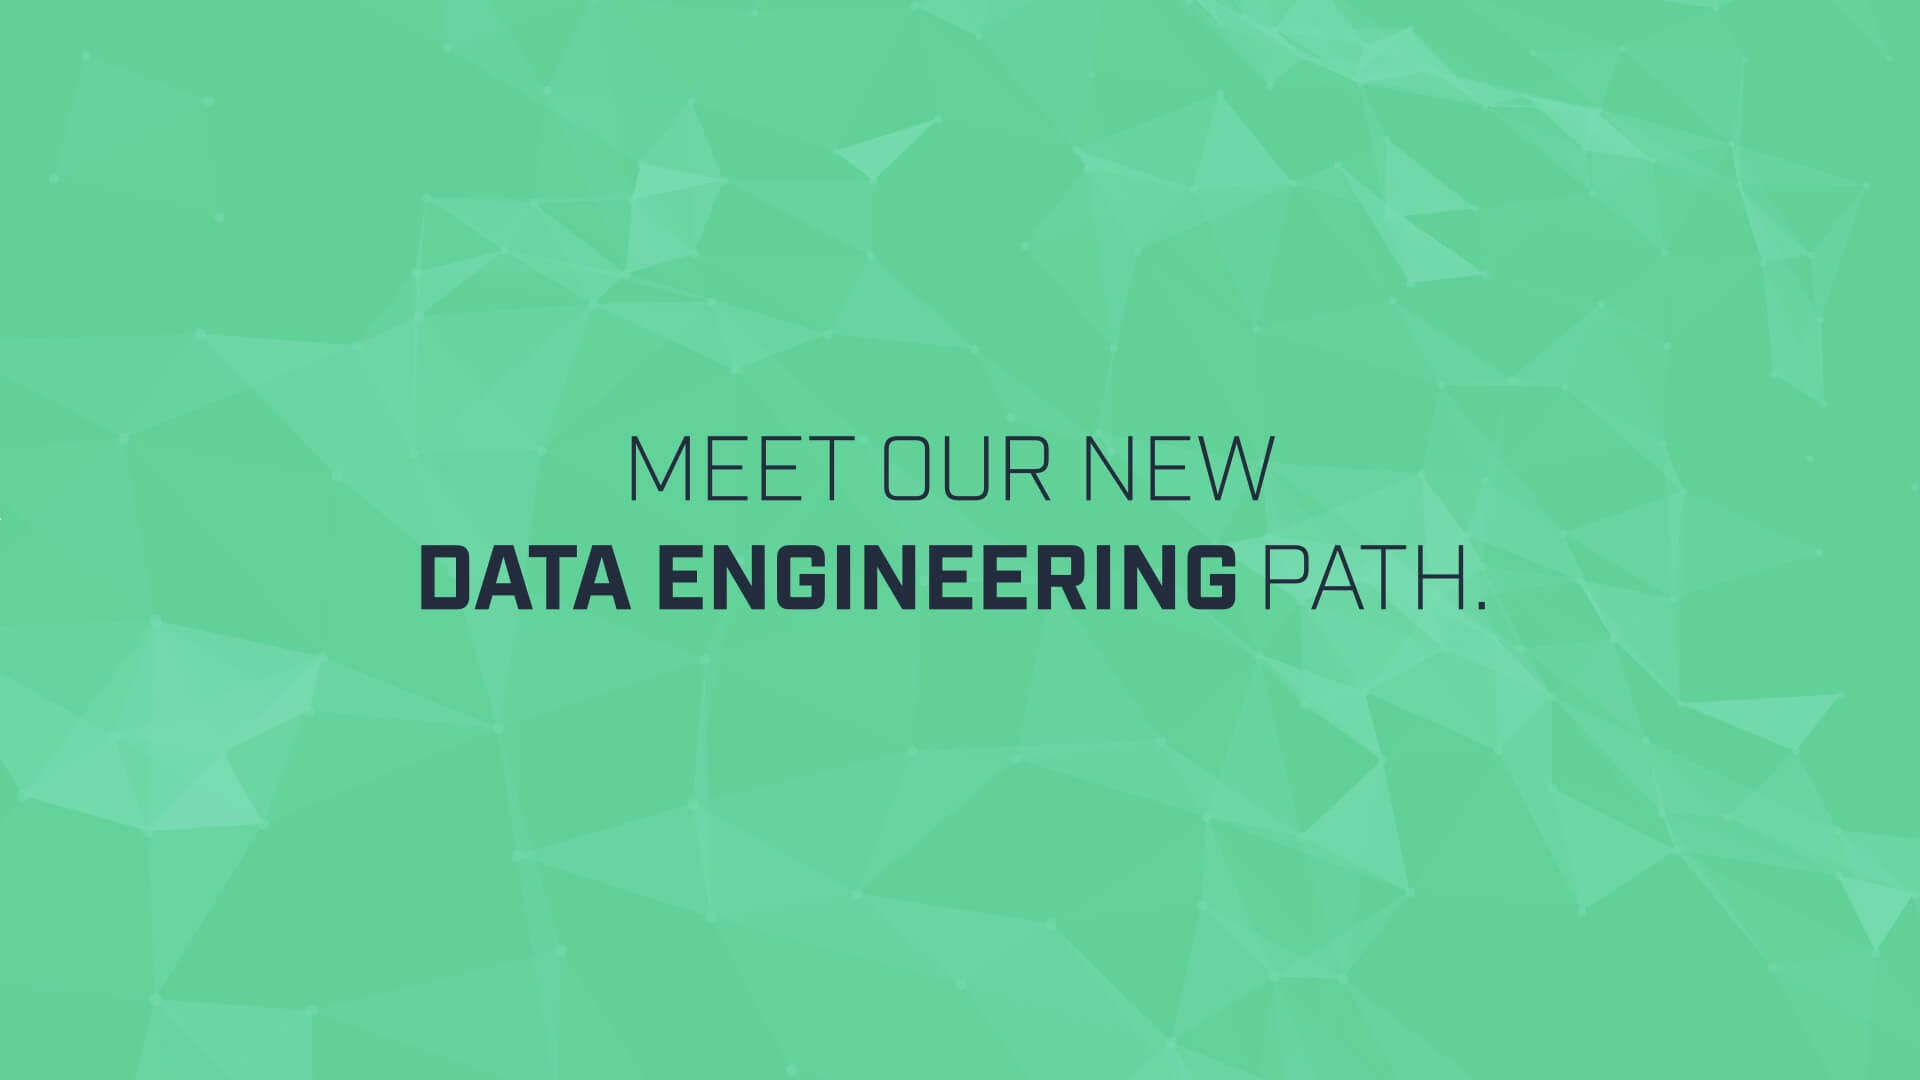 Go From Total Beginner to Data Engineer with Our New Path